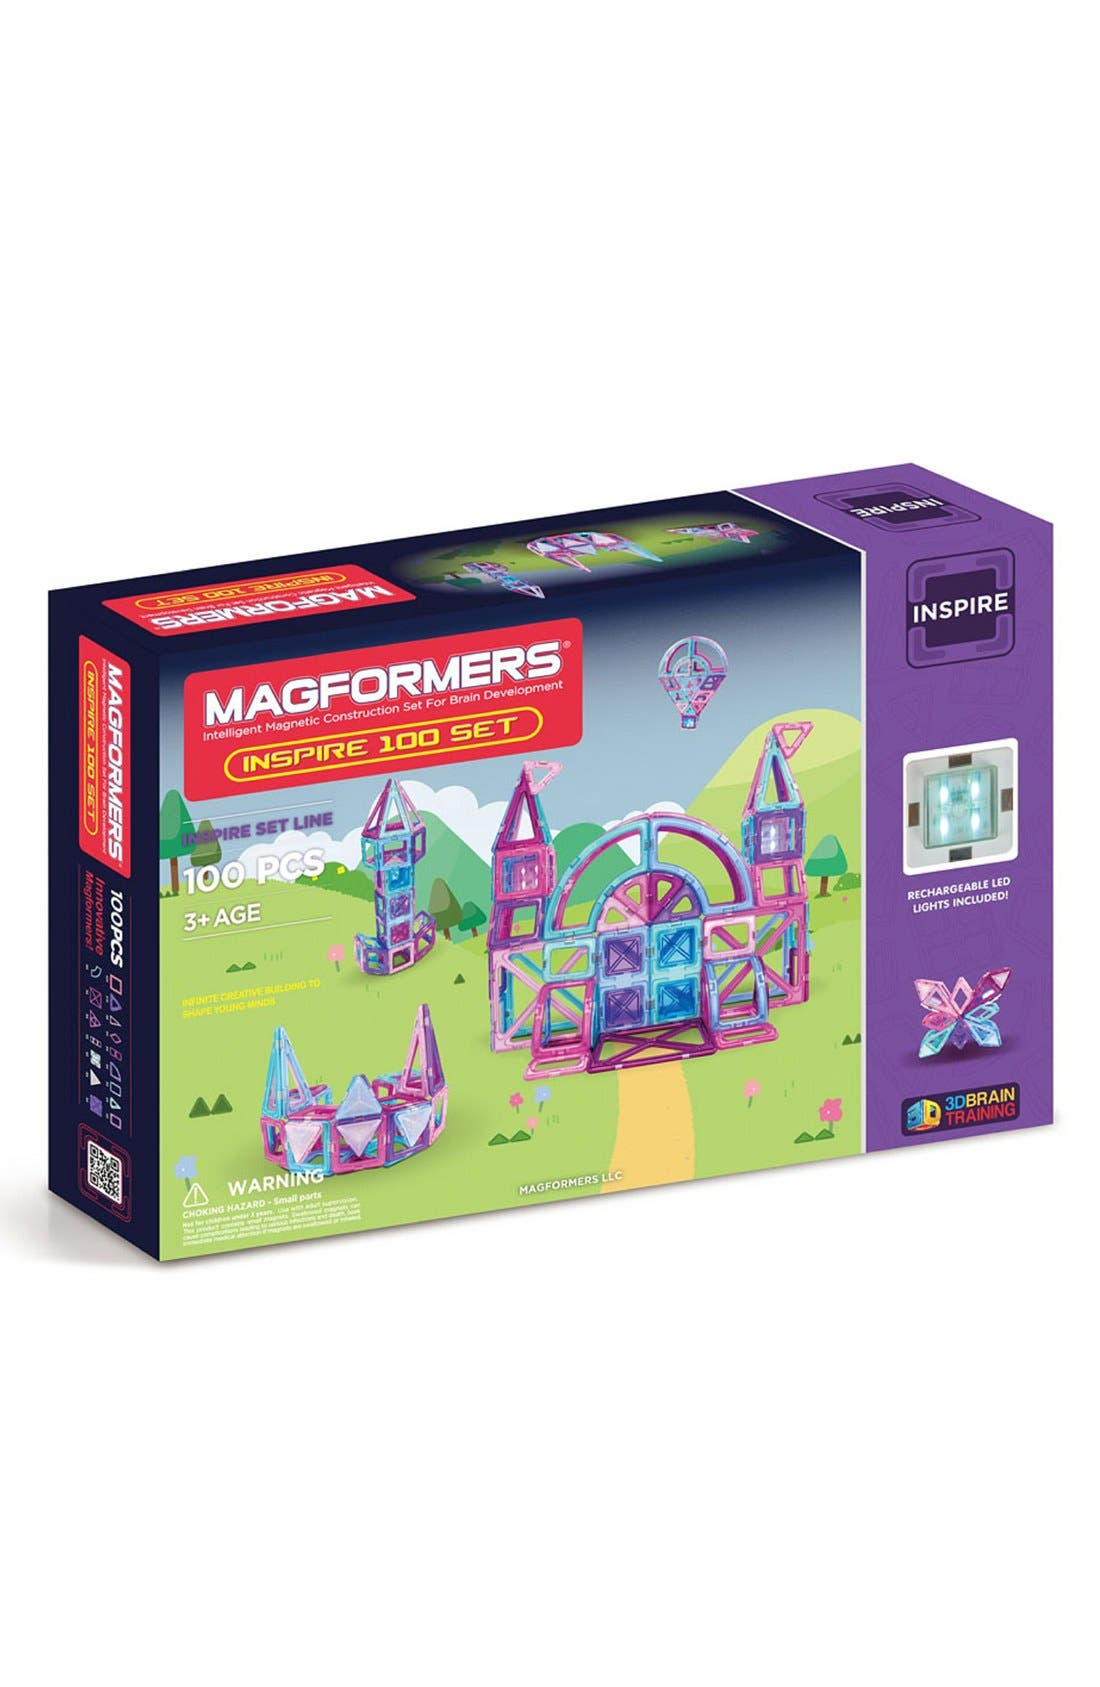 Alternate Image 1 Selected - Magformers 'Inspire' Magnetic Construction Set